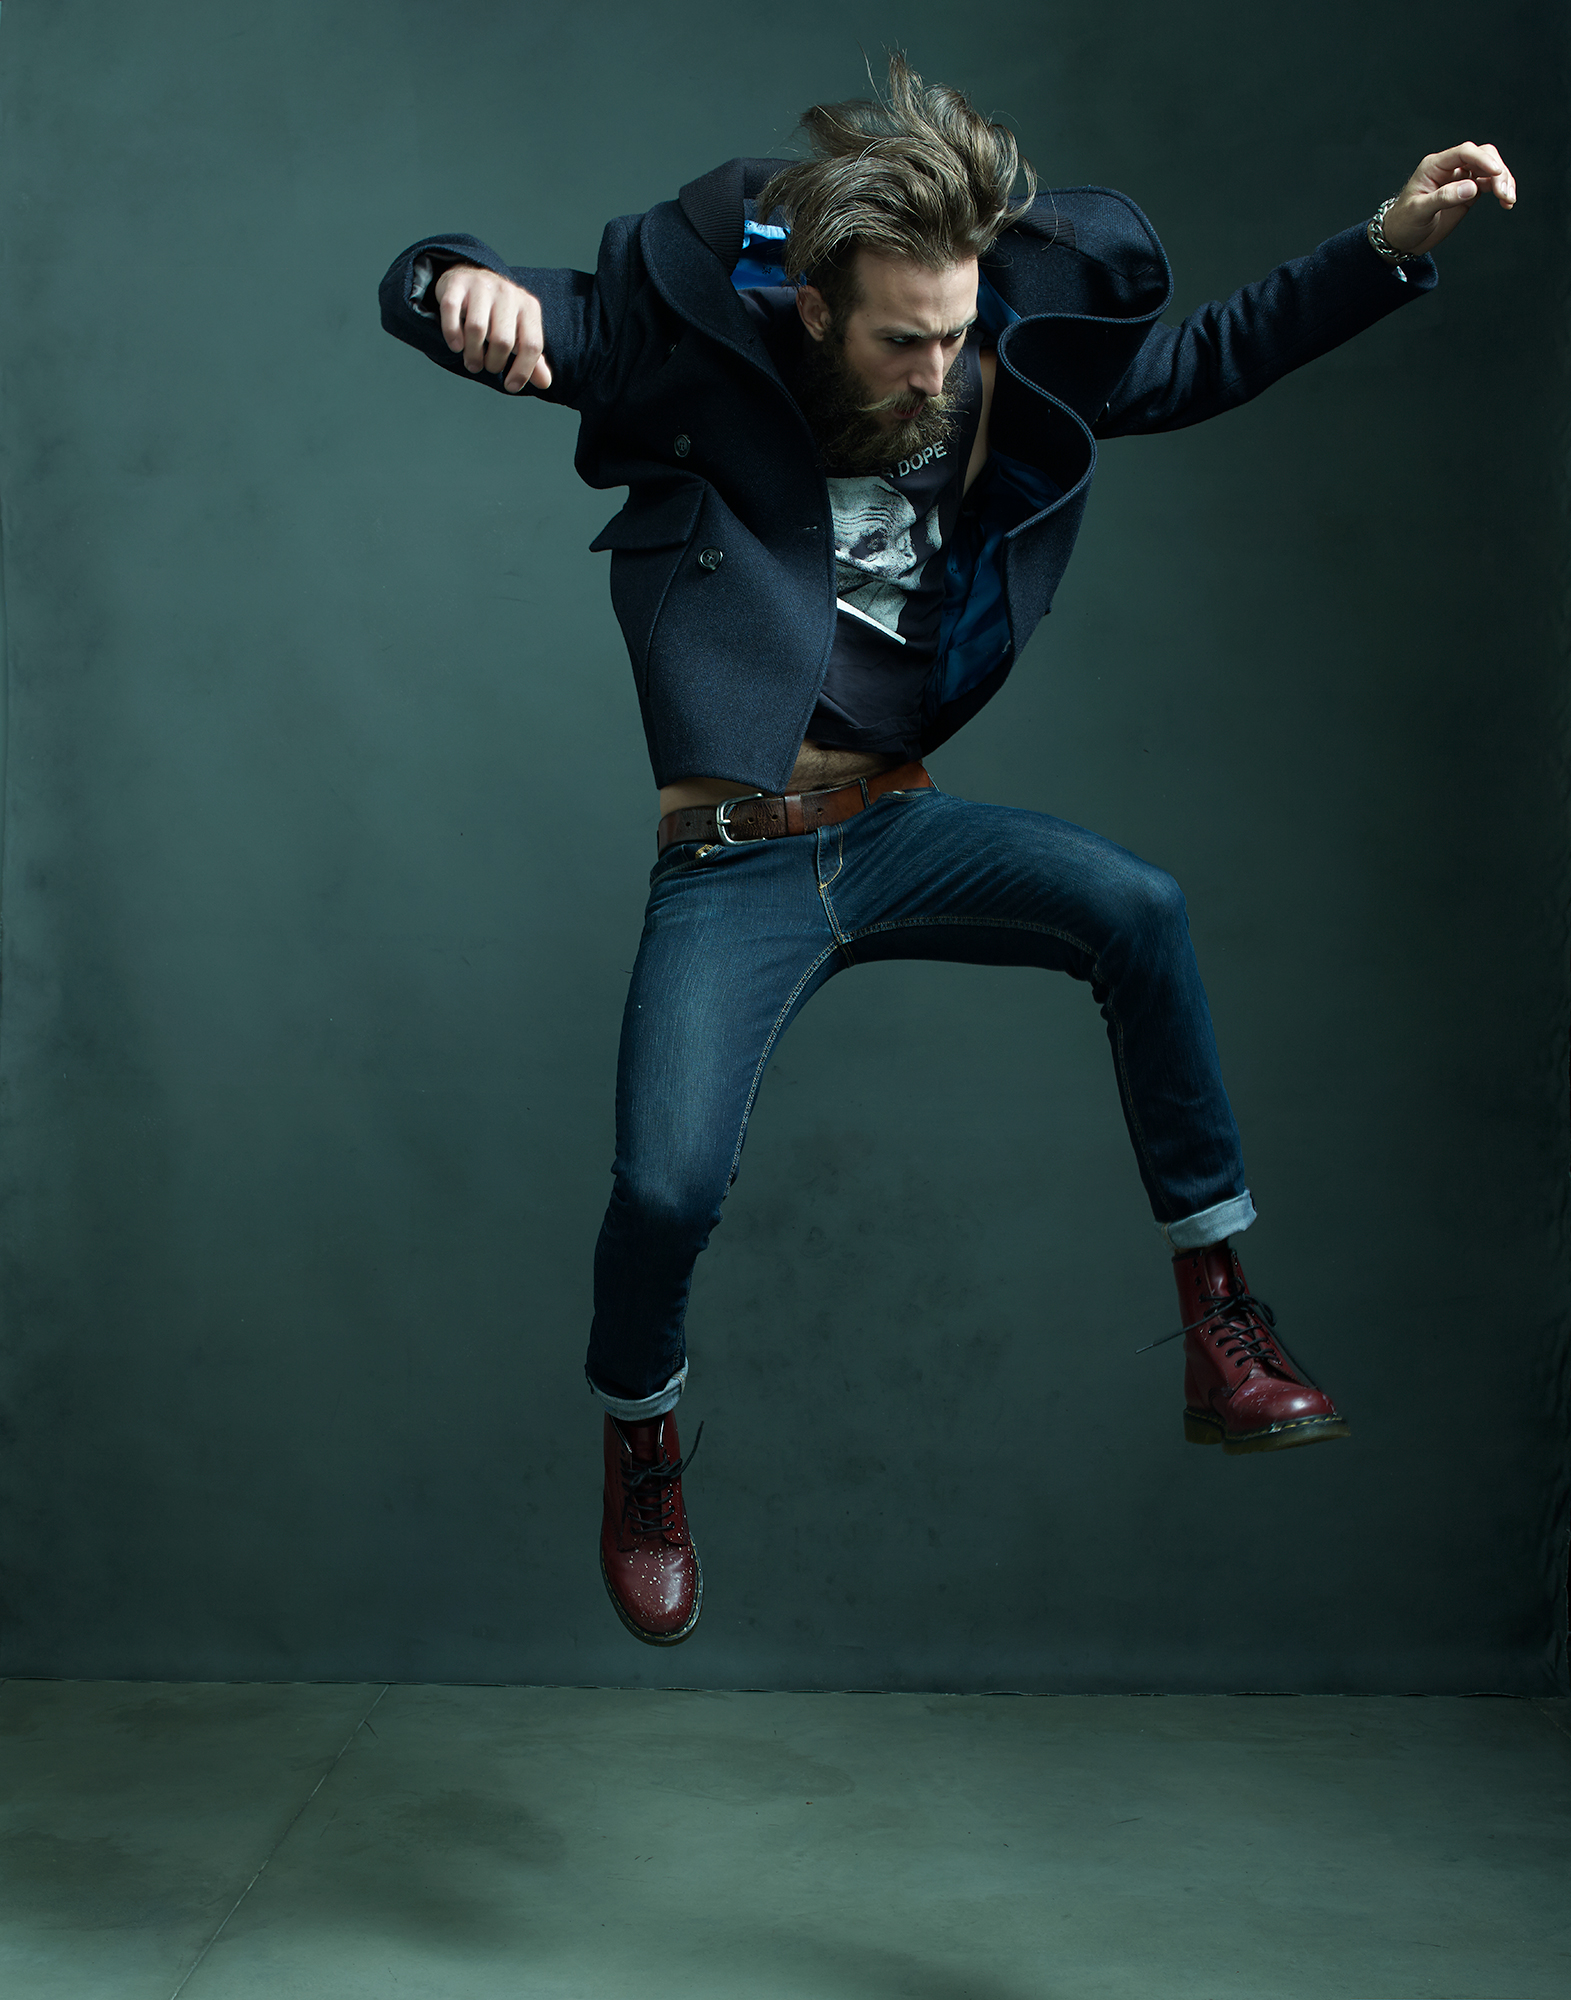 Robert-Ascroft-Jump-color-03